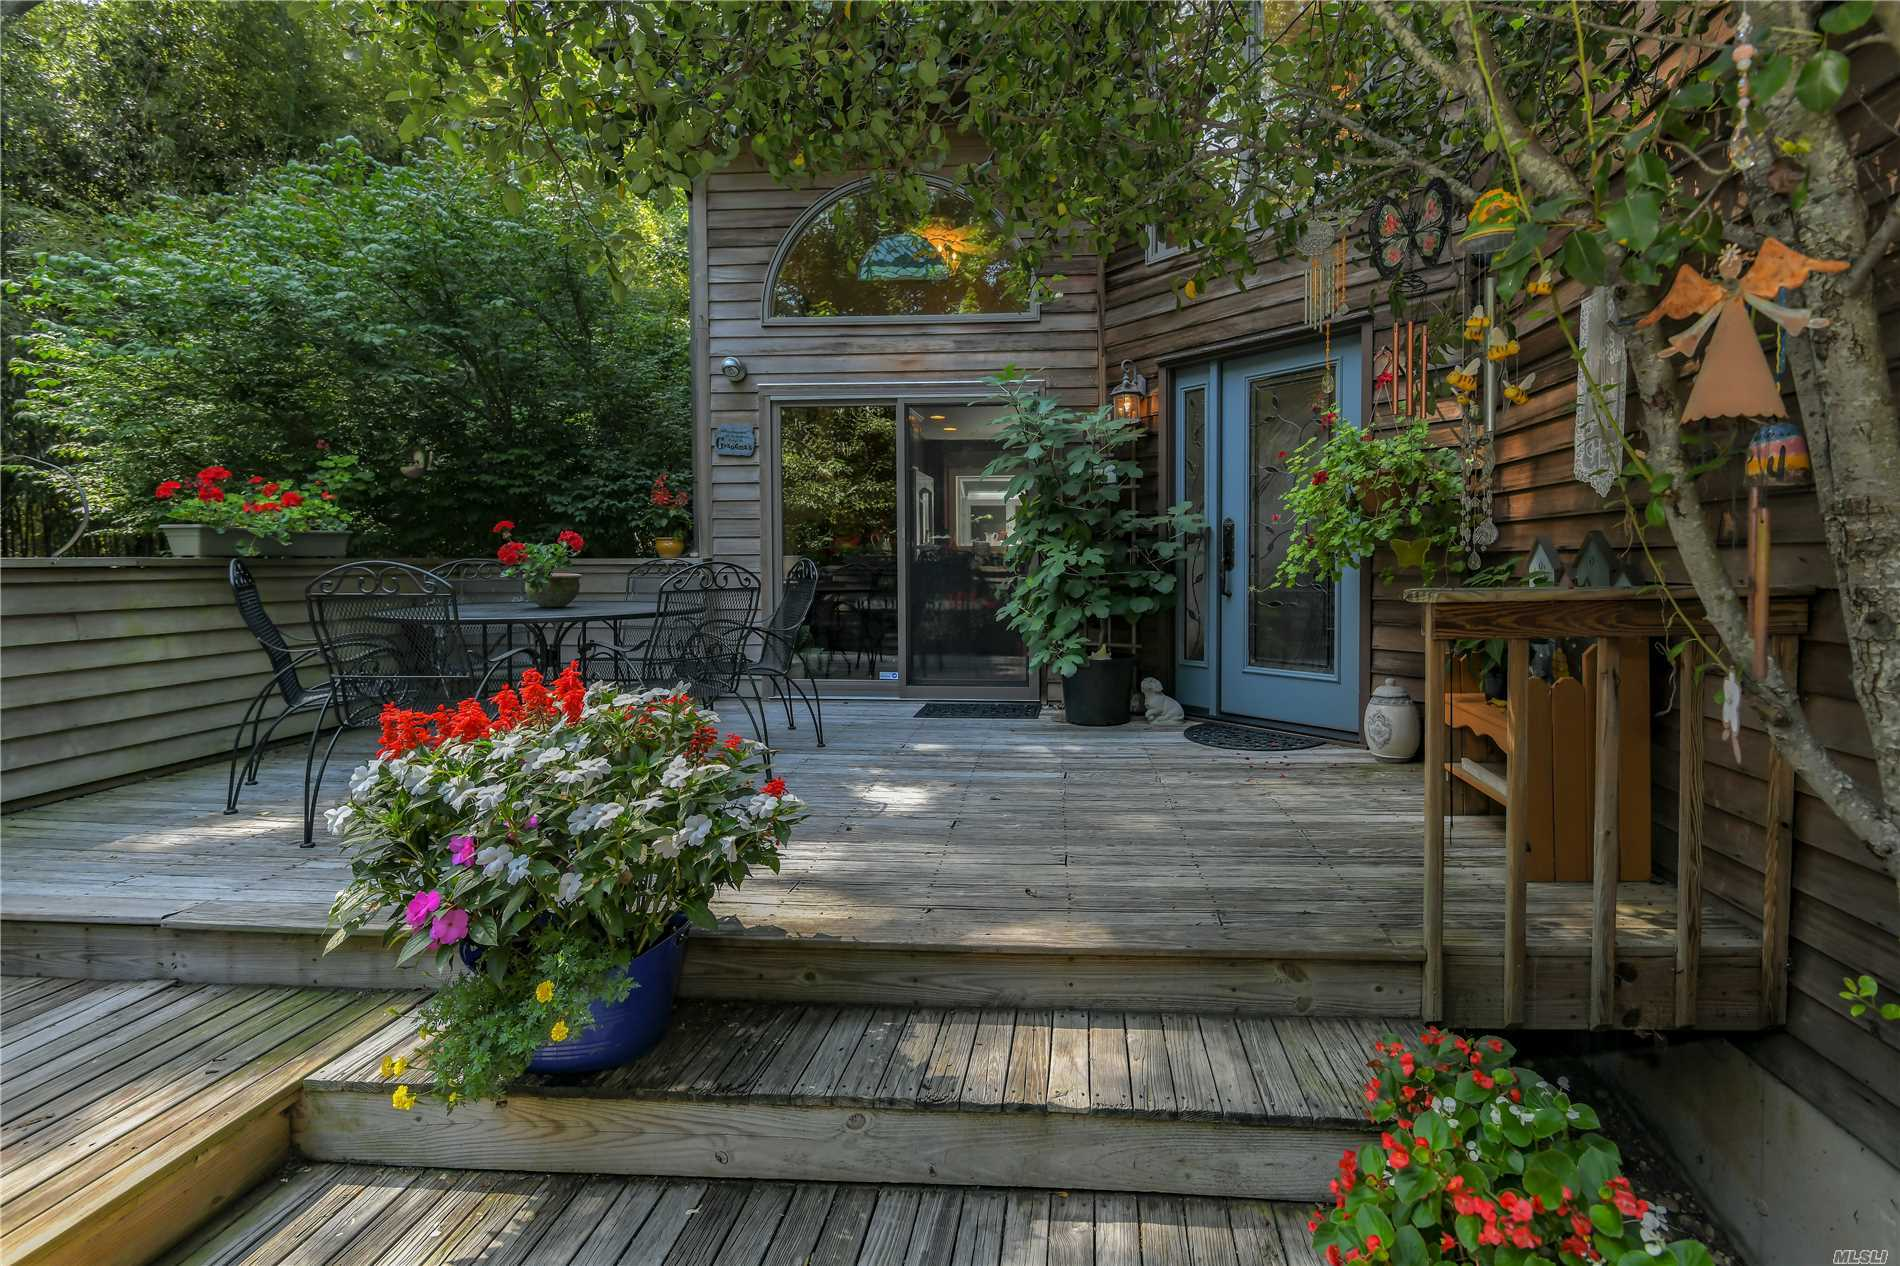 Privacy, Trees And An Artist Studio Are Just Some Of The Features This Traditionally Decorated Home With A Rustic Exterior Offers. Designed For Low Maintenance And Entertaining, This Is The Perfect Weekend Getaway. Close To Goose Creek Beach And Everything Else The North Fork Has To Offer!